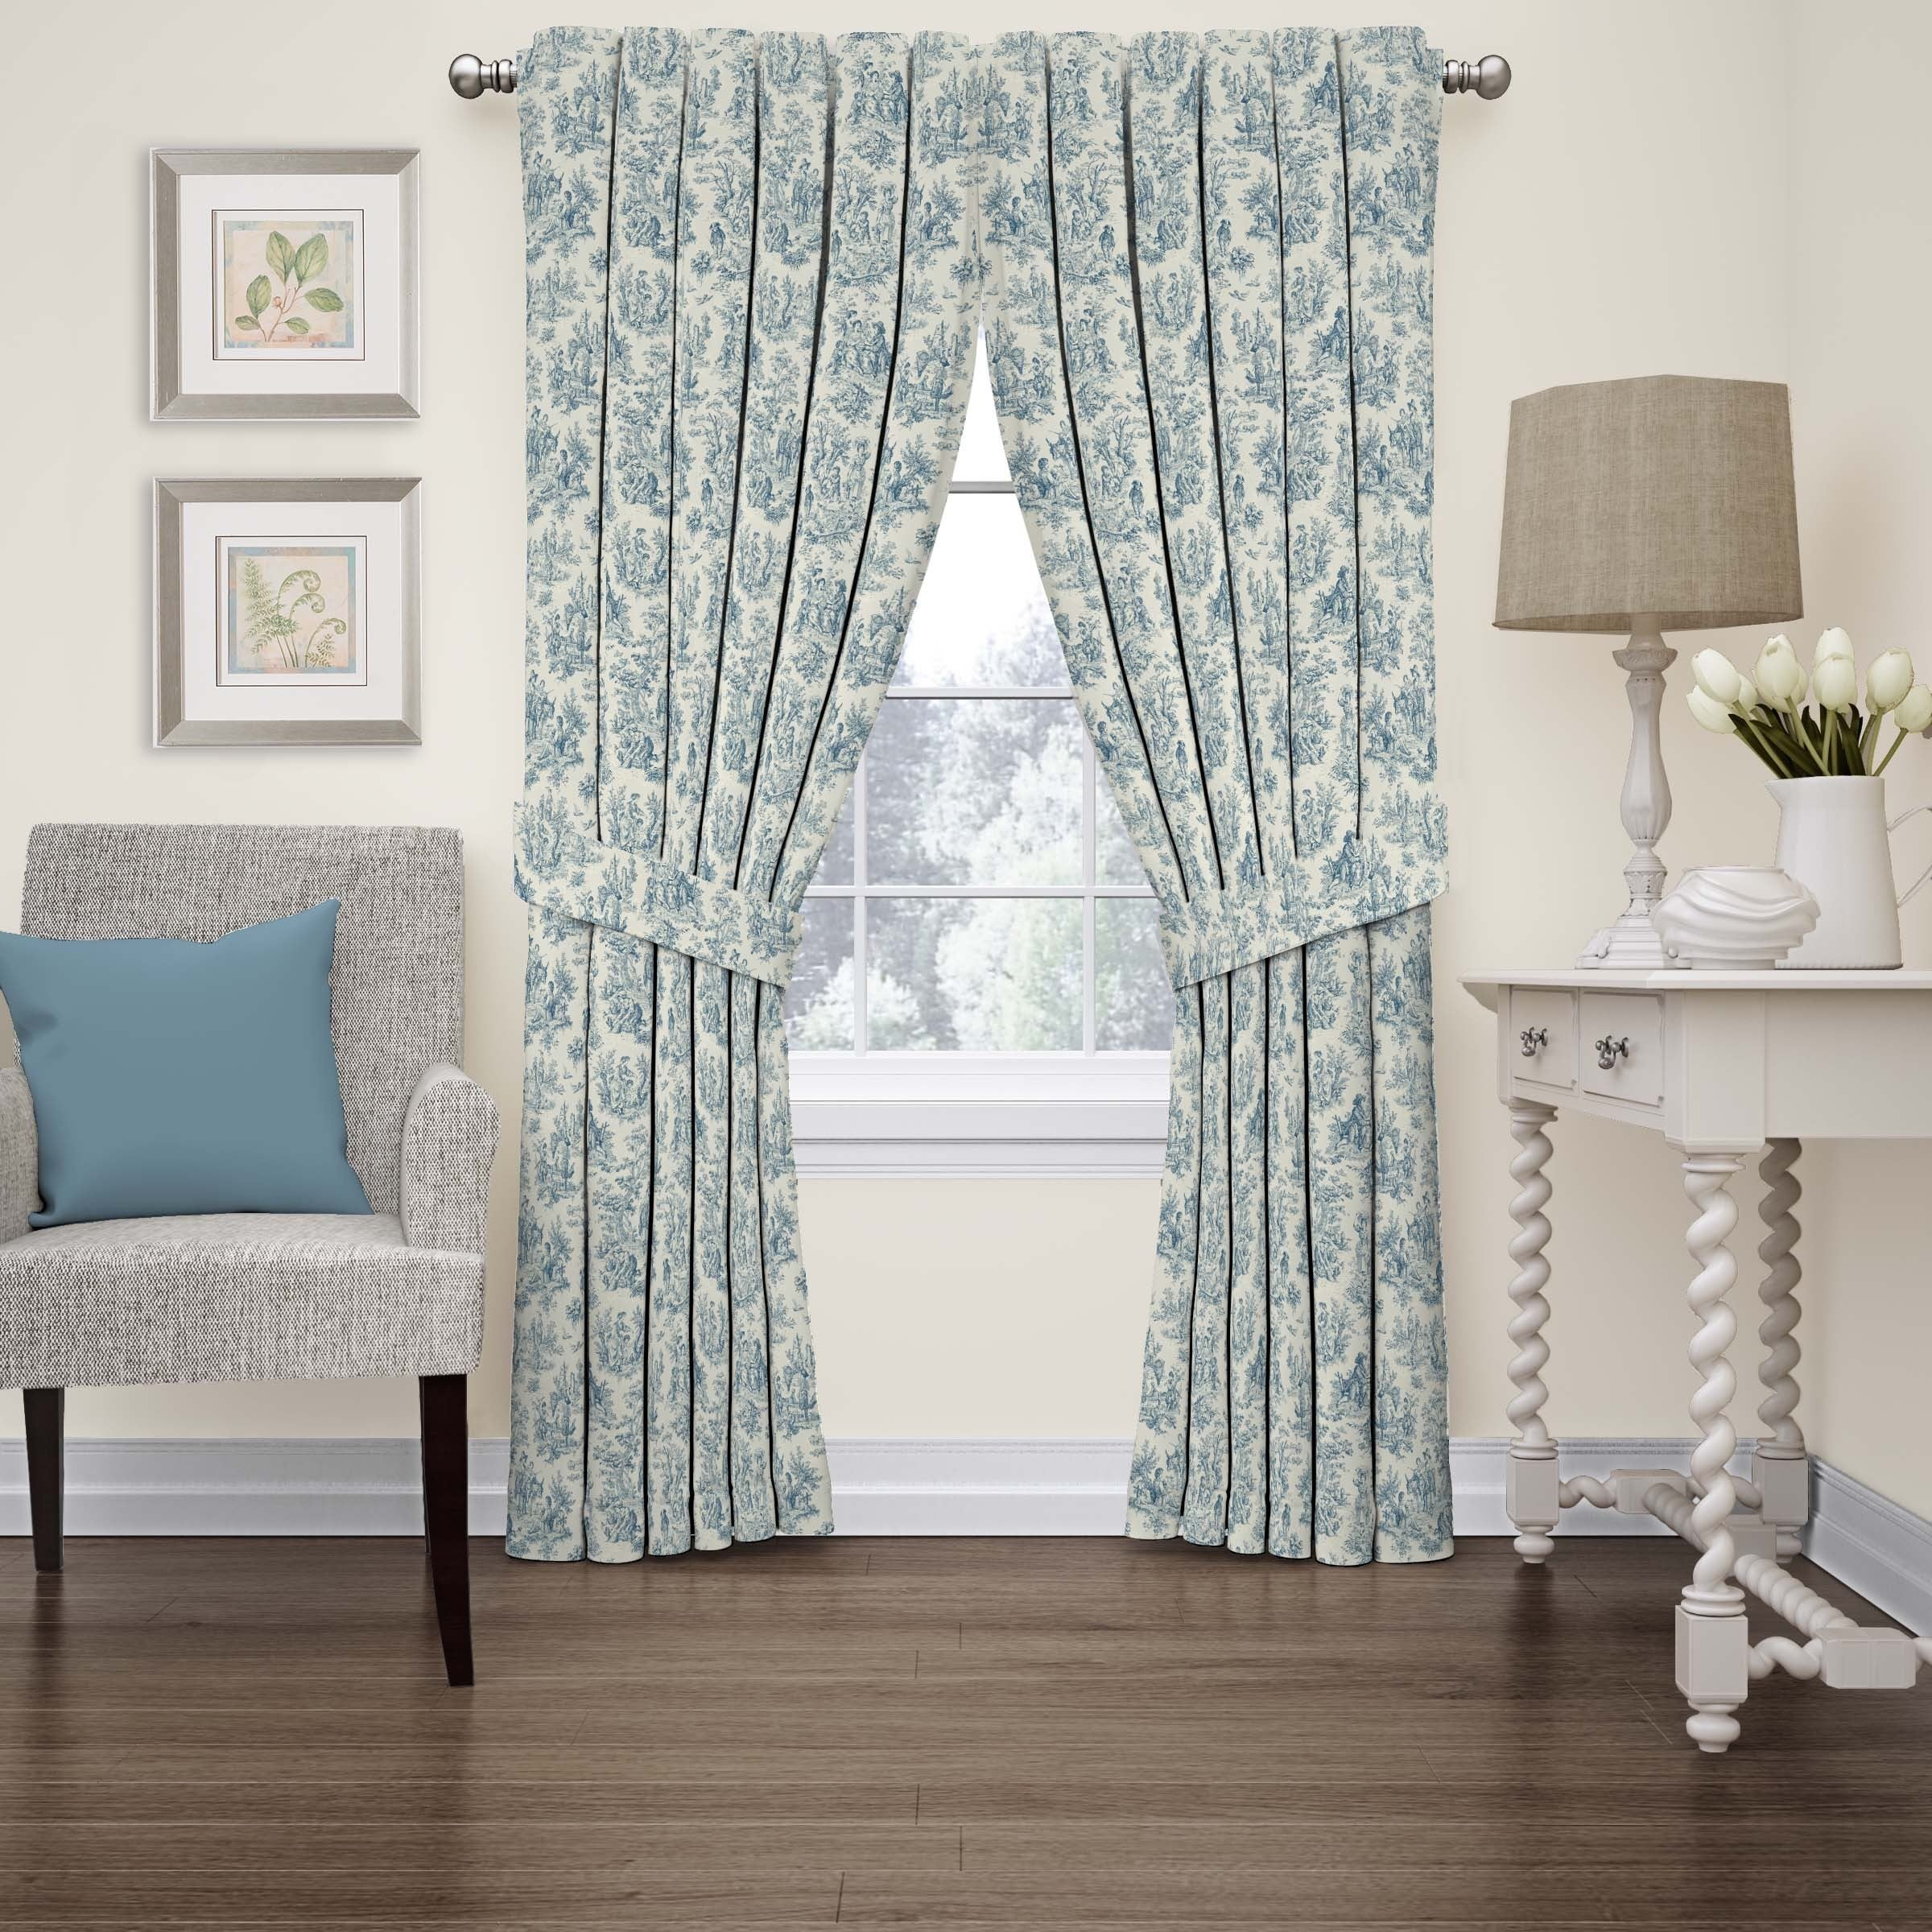 for unique together blinds kitchen receptions of dolphin me or and lowes shades silk near full drapes with plus well wedding concept as also draping dupioni toile velour curtains size photo